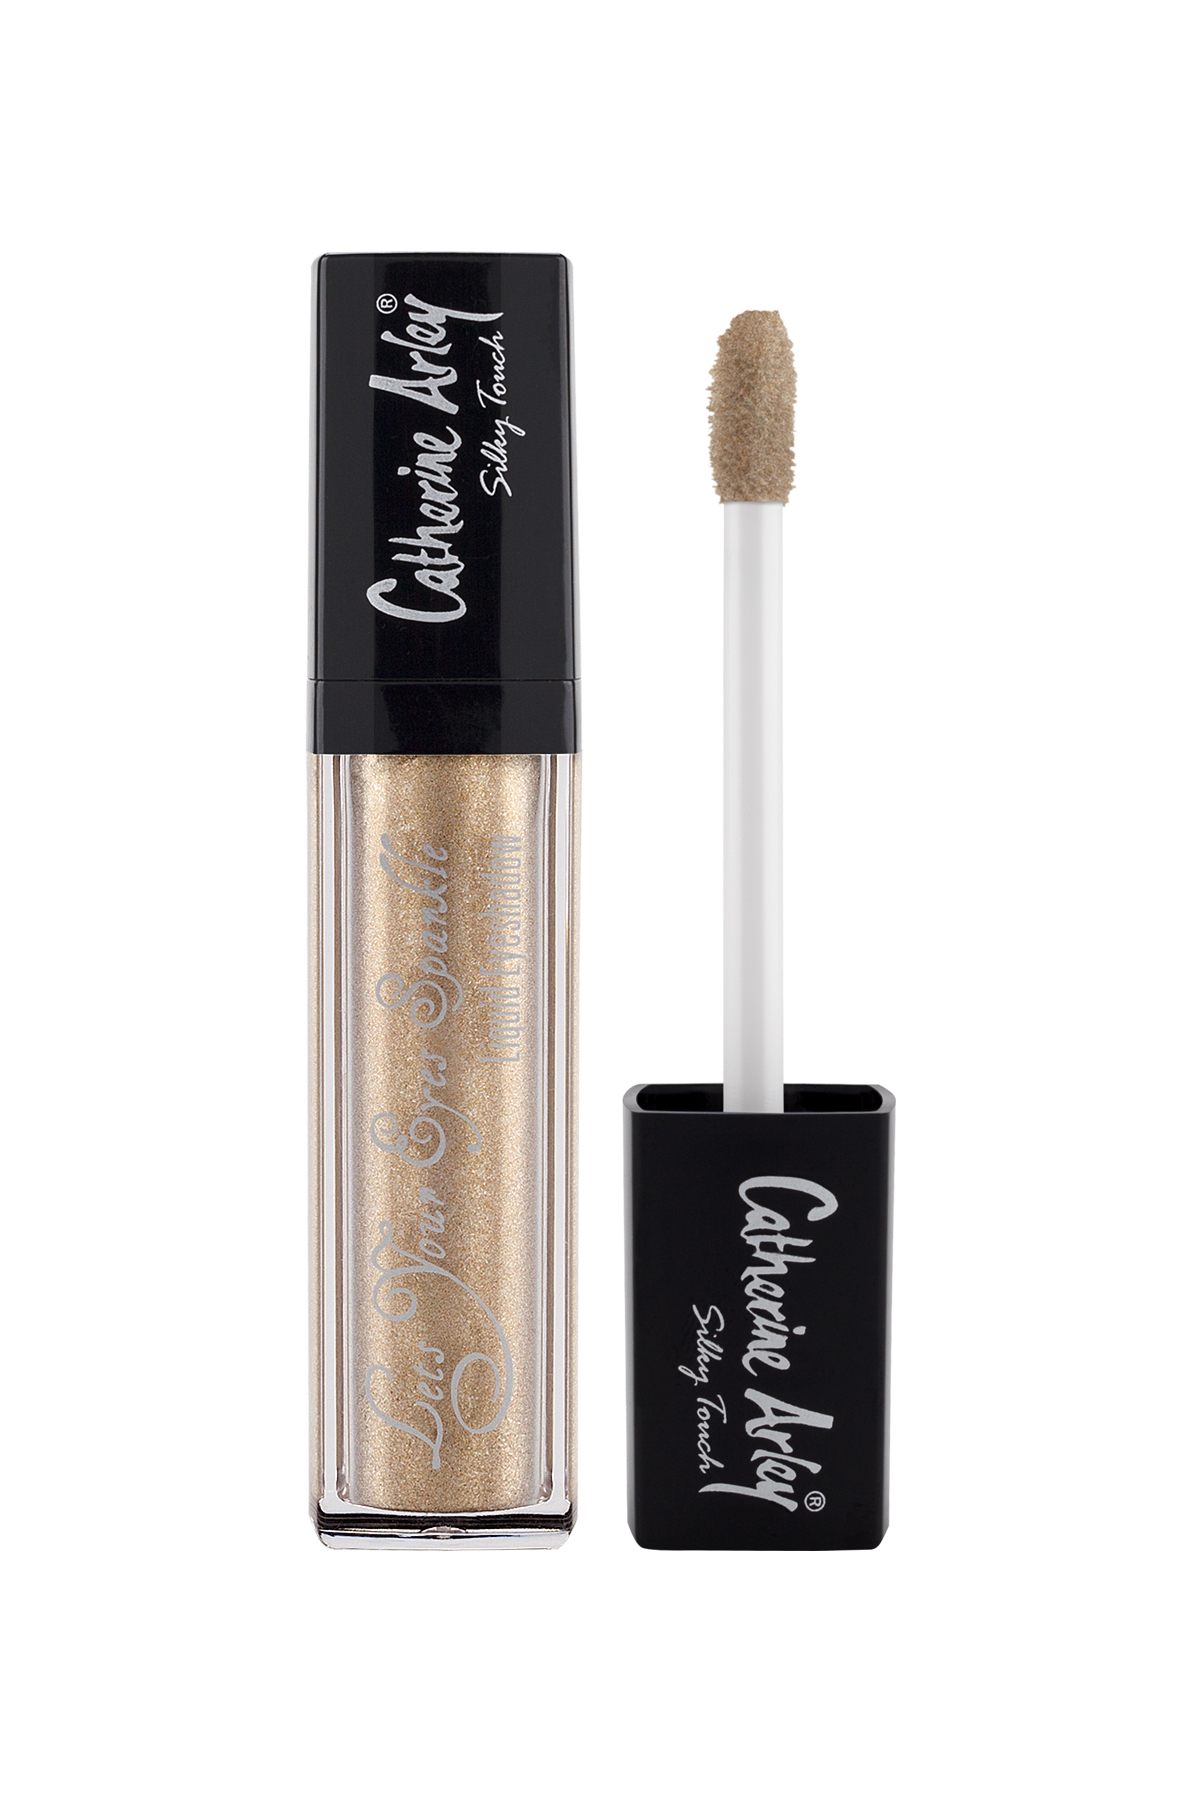 LETS YOUR EYES SPARKLE LIQUID EYESHADOW